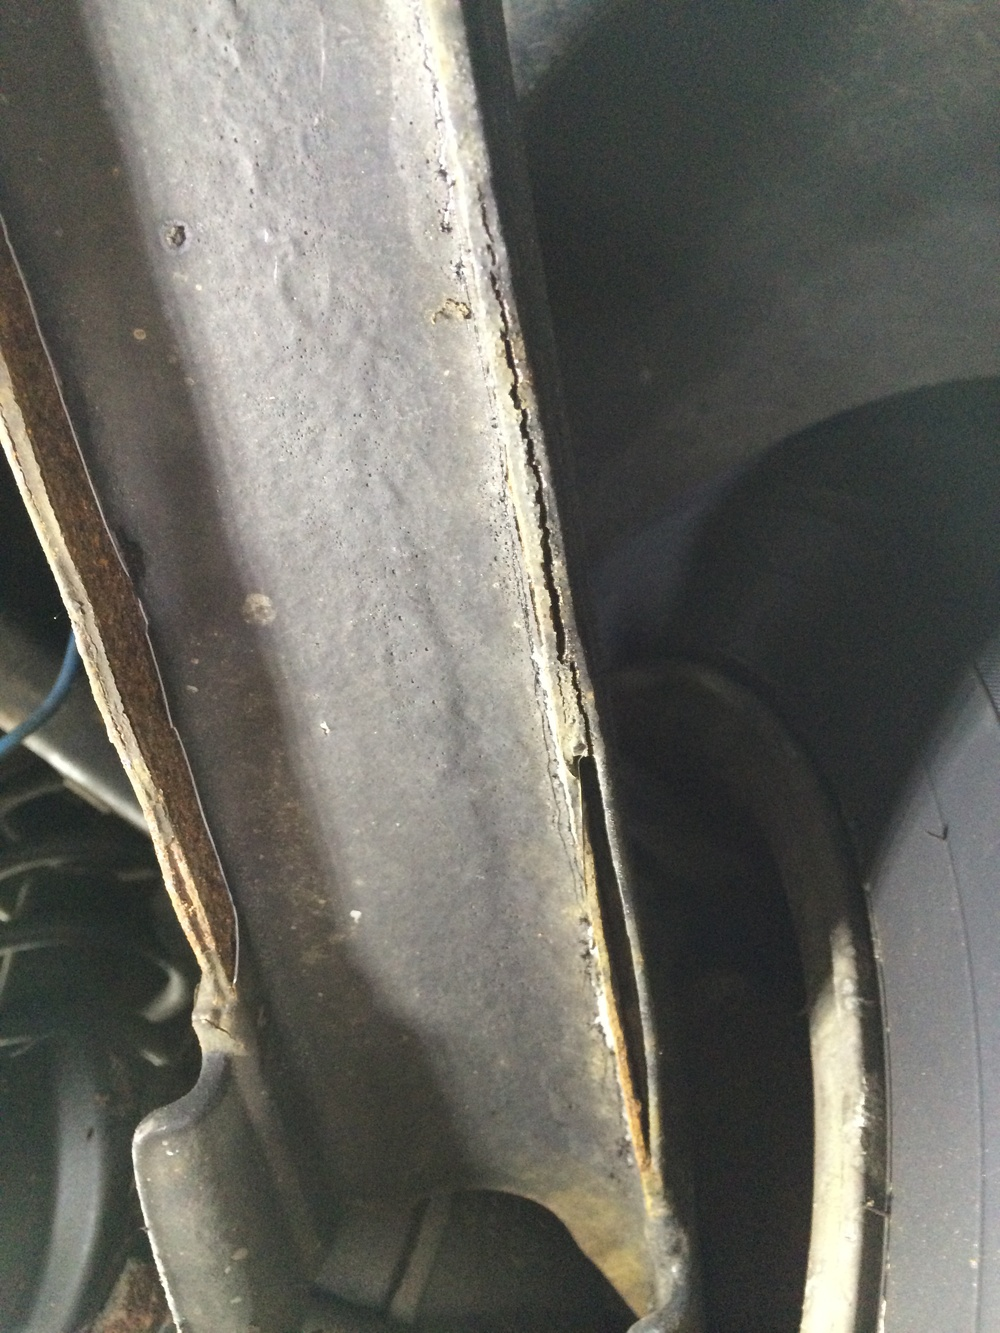 Trailing Arm Rust